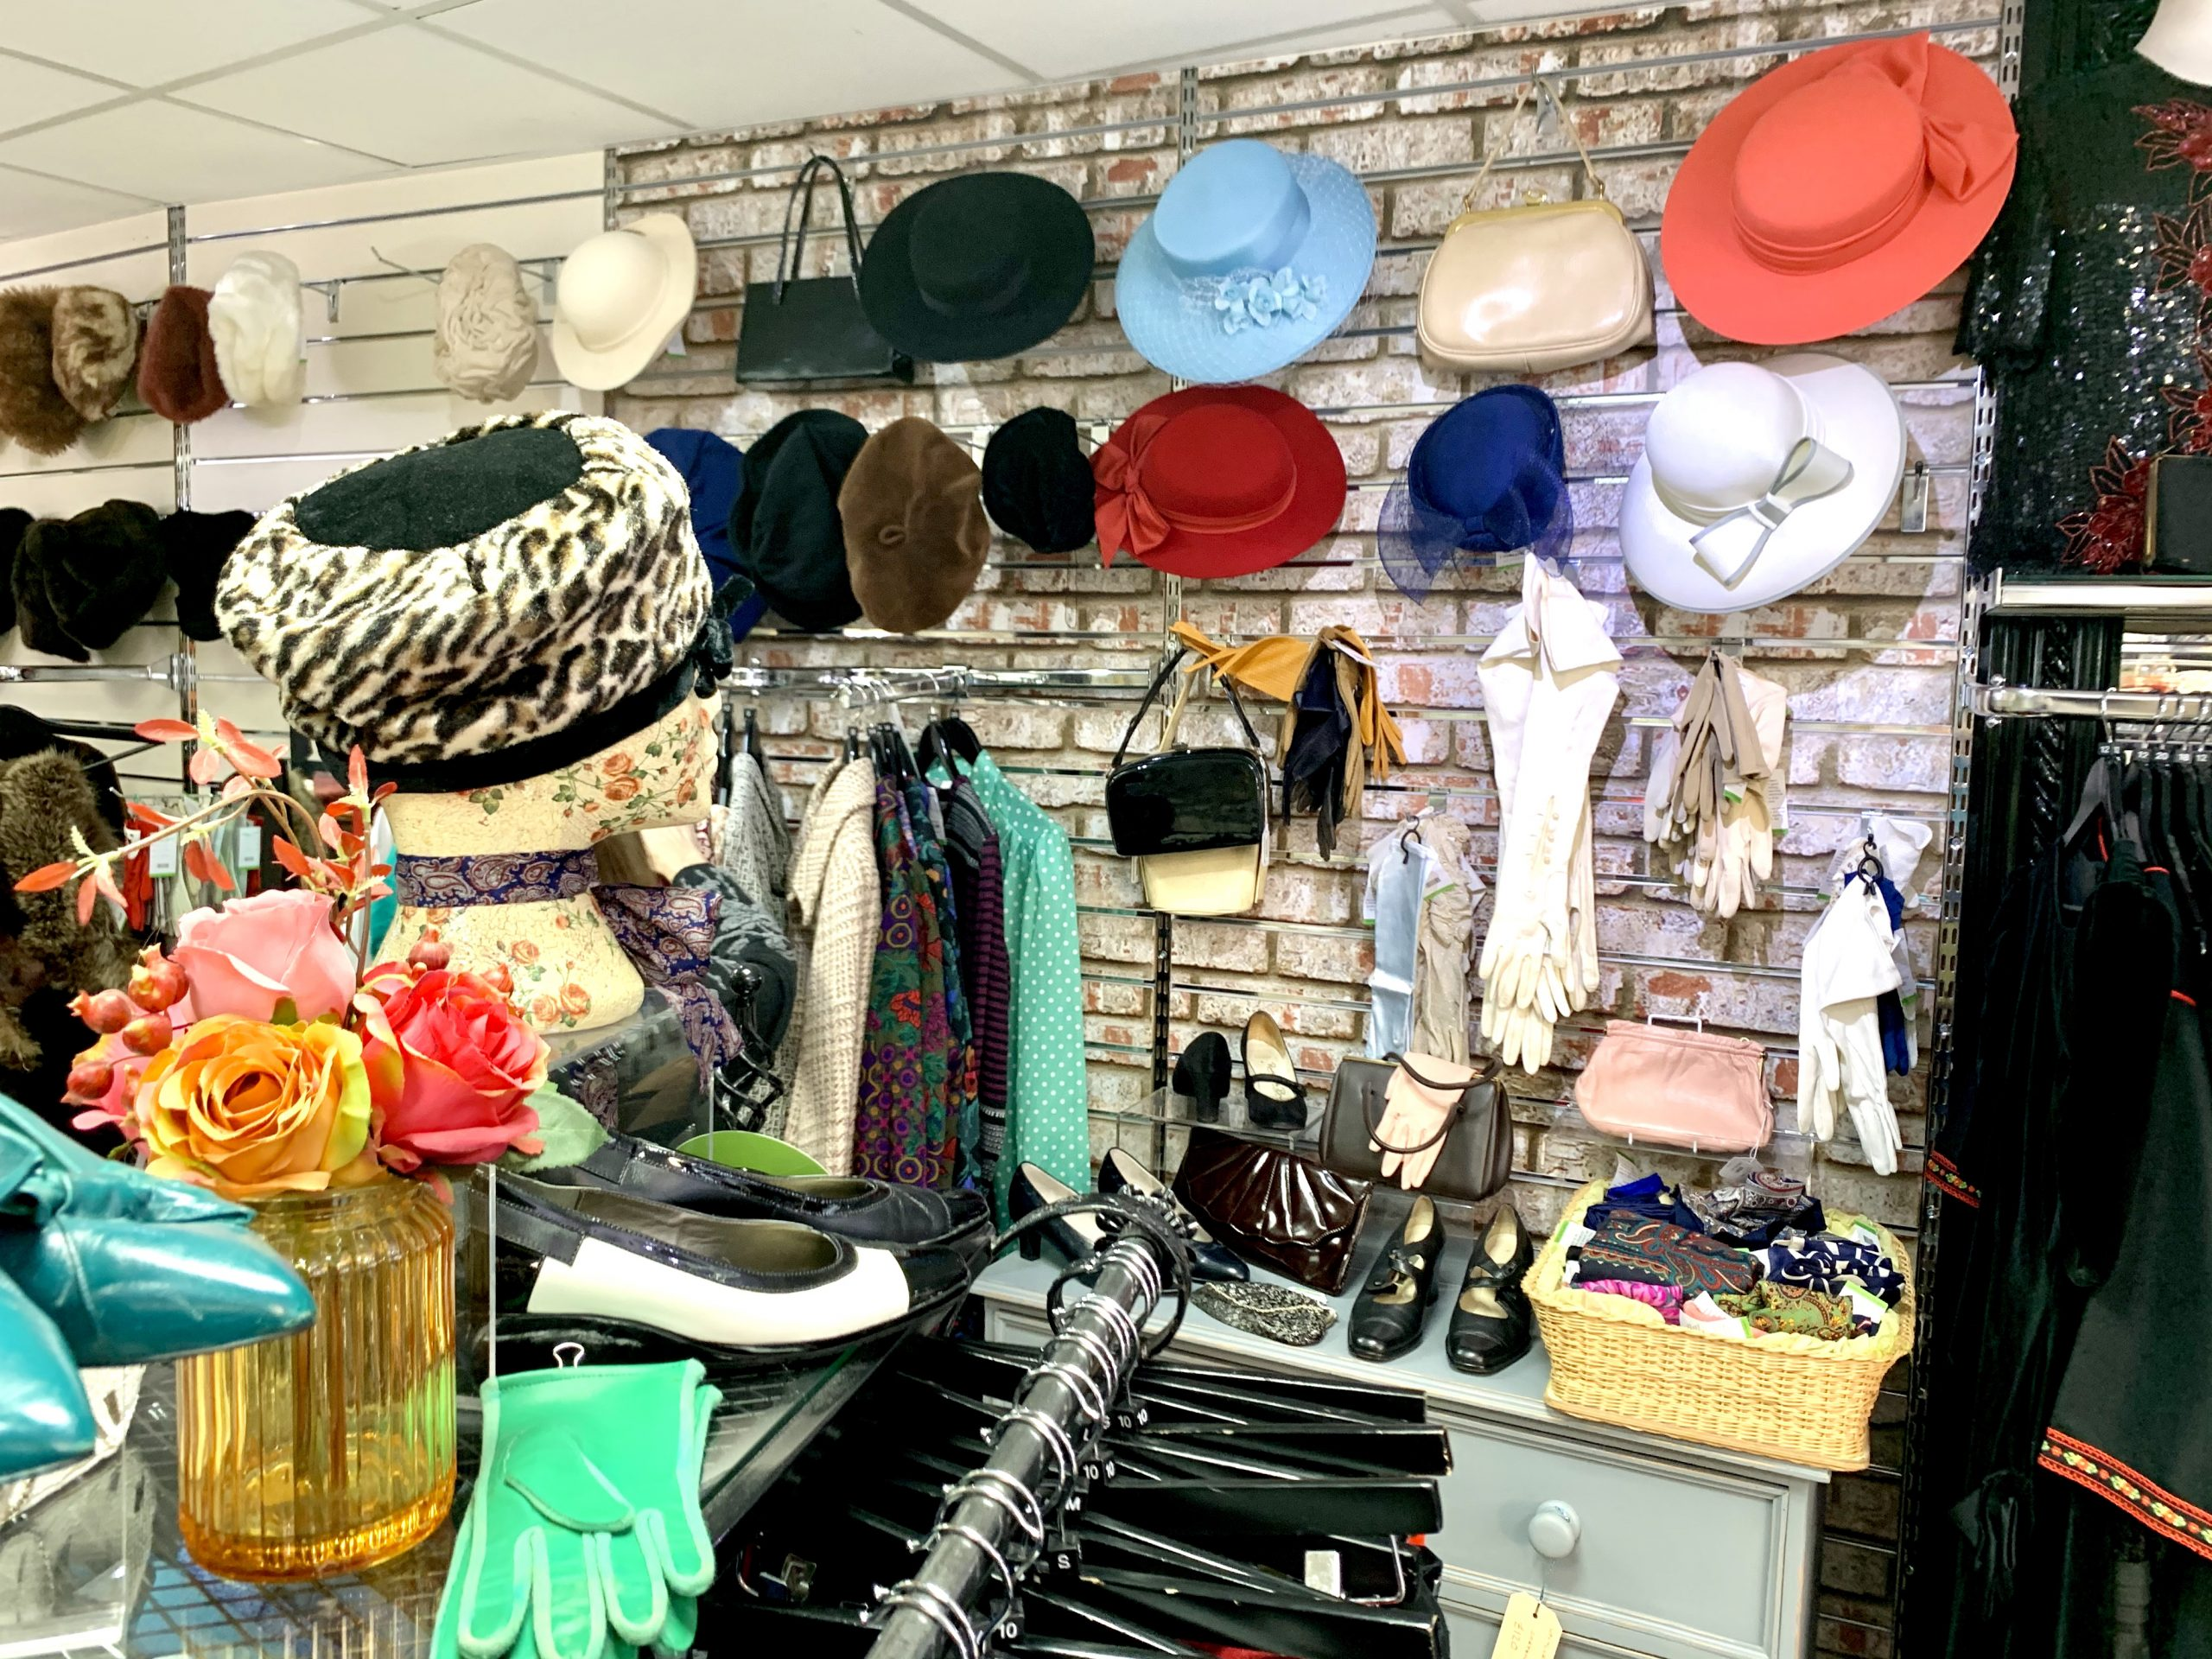 Hats and gloves on display in a vintage shop